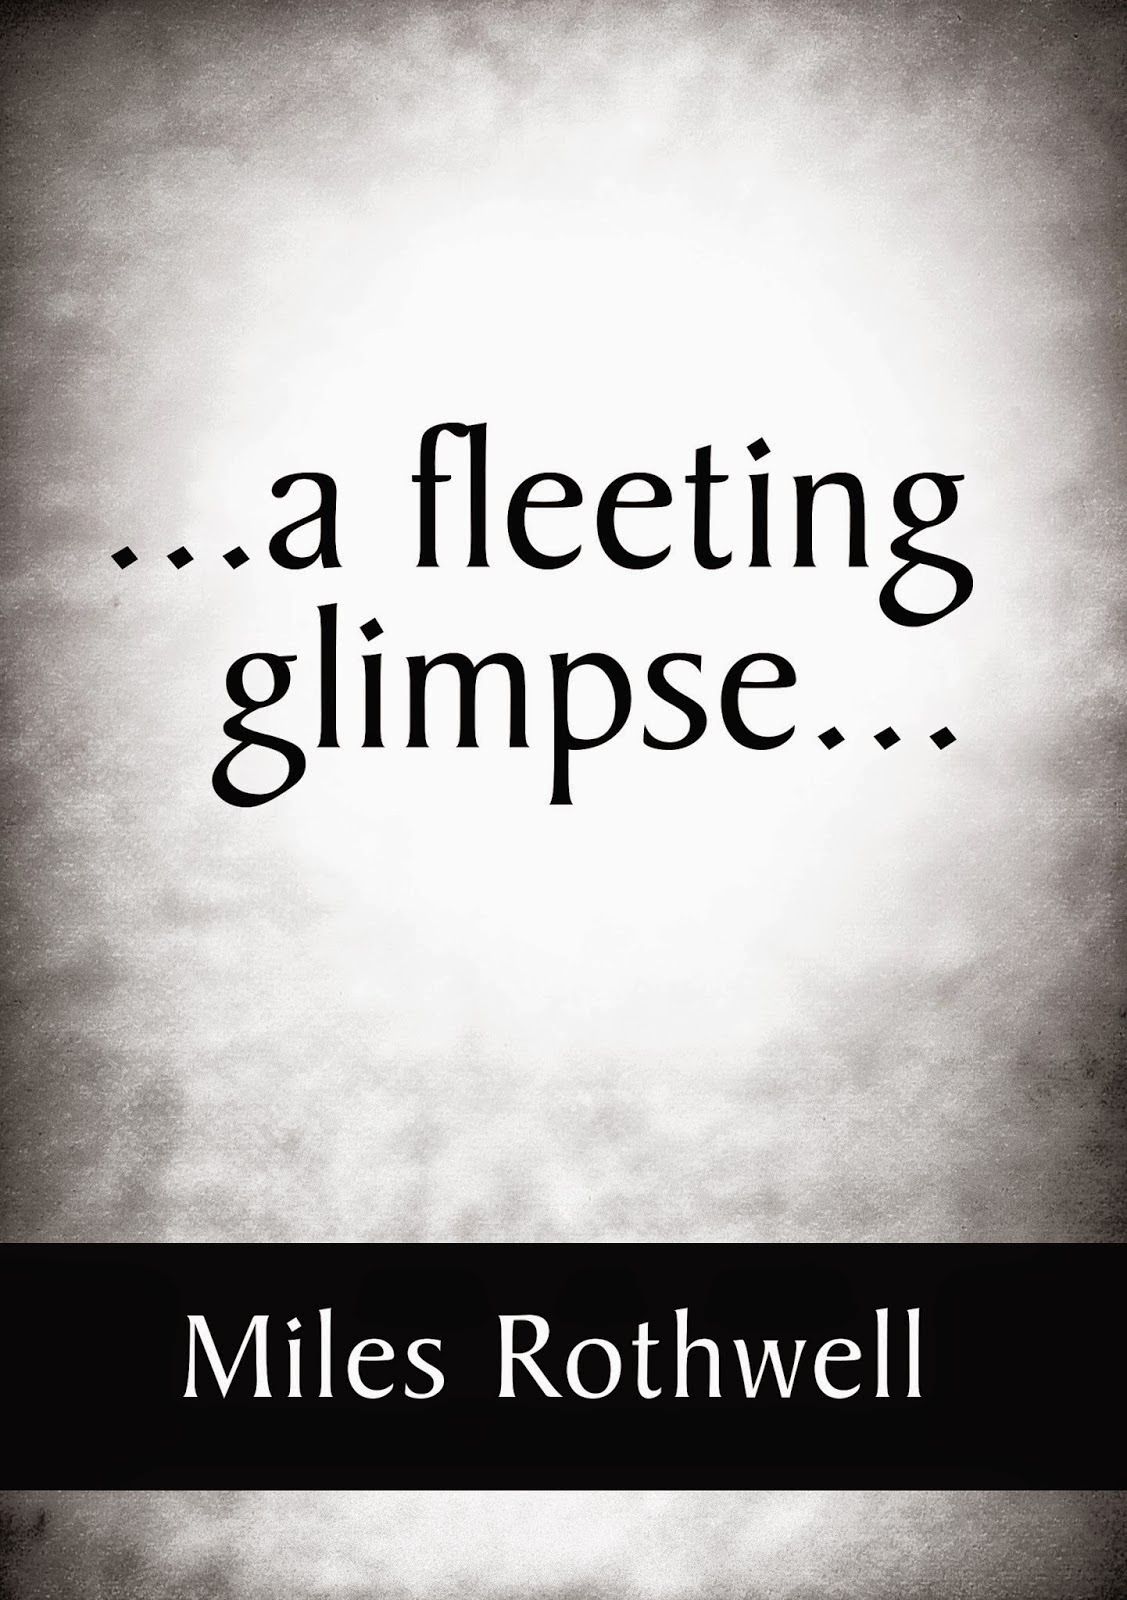 http://www.amazon.com/fleeting-glimpse-Miles-Rothwell-ebook/dp/B00KWS0AV4/ref=la_B00JFKRVJ4_1_1?s=books&ie=UTF8&qid=1419896706&sr=1-1